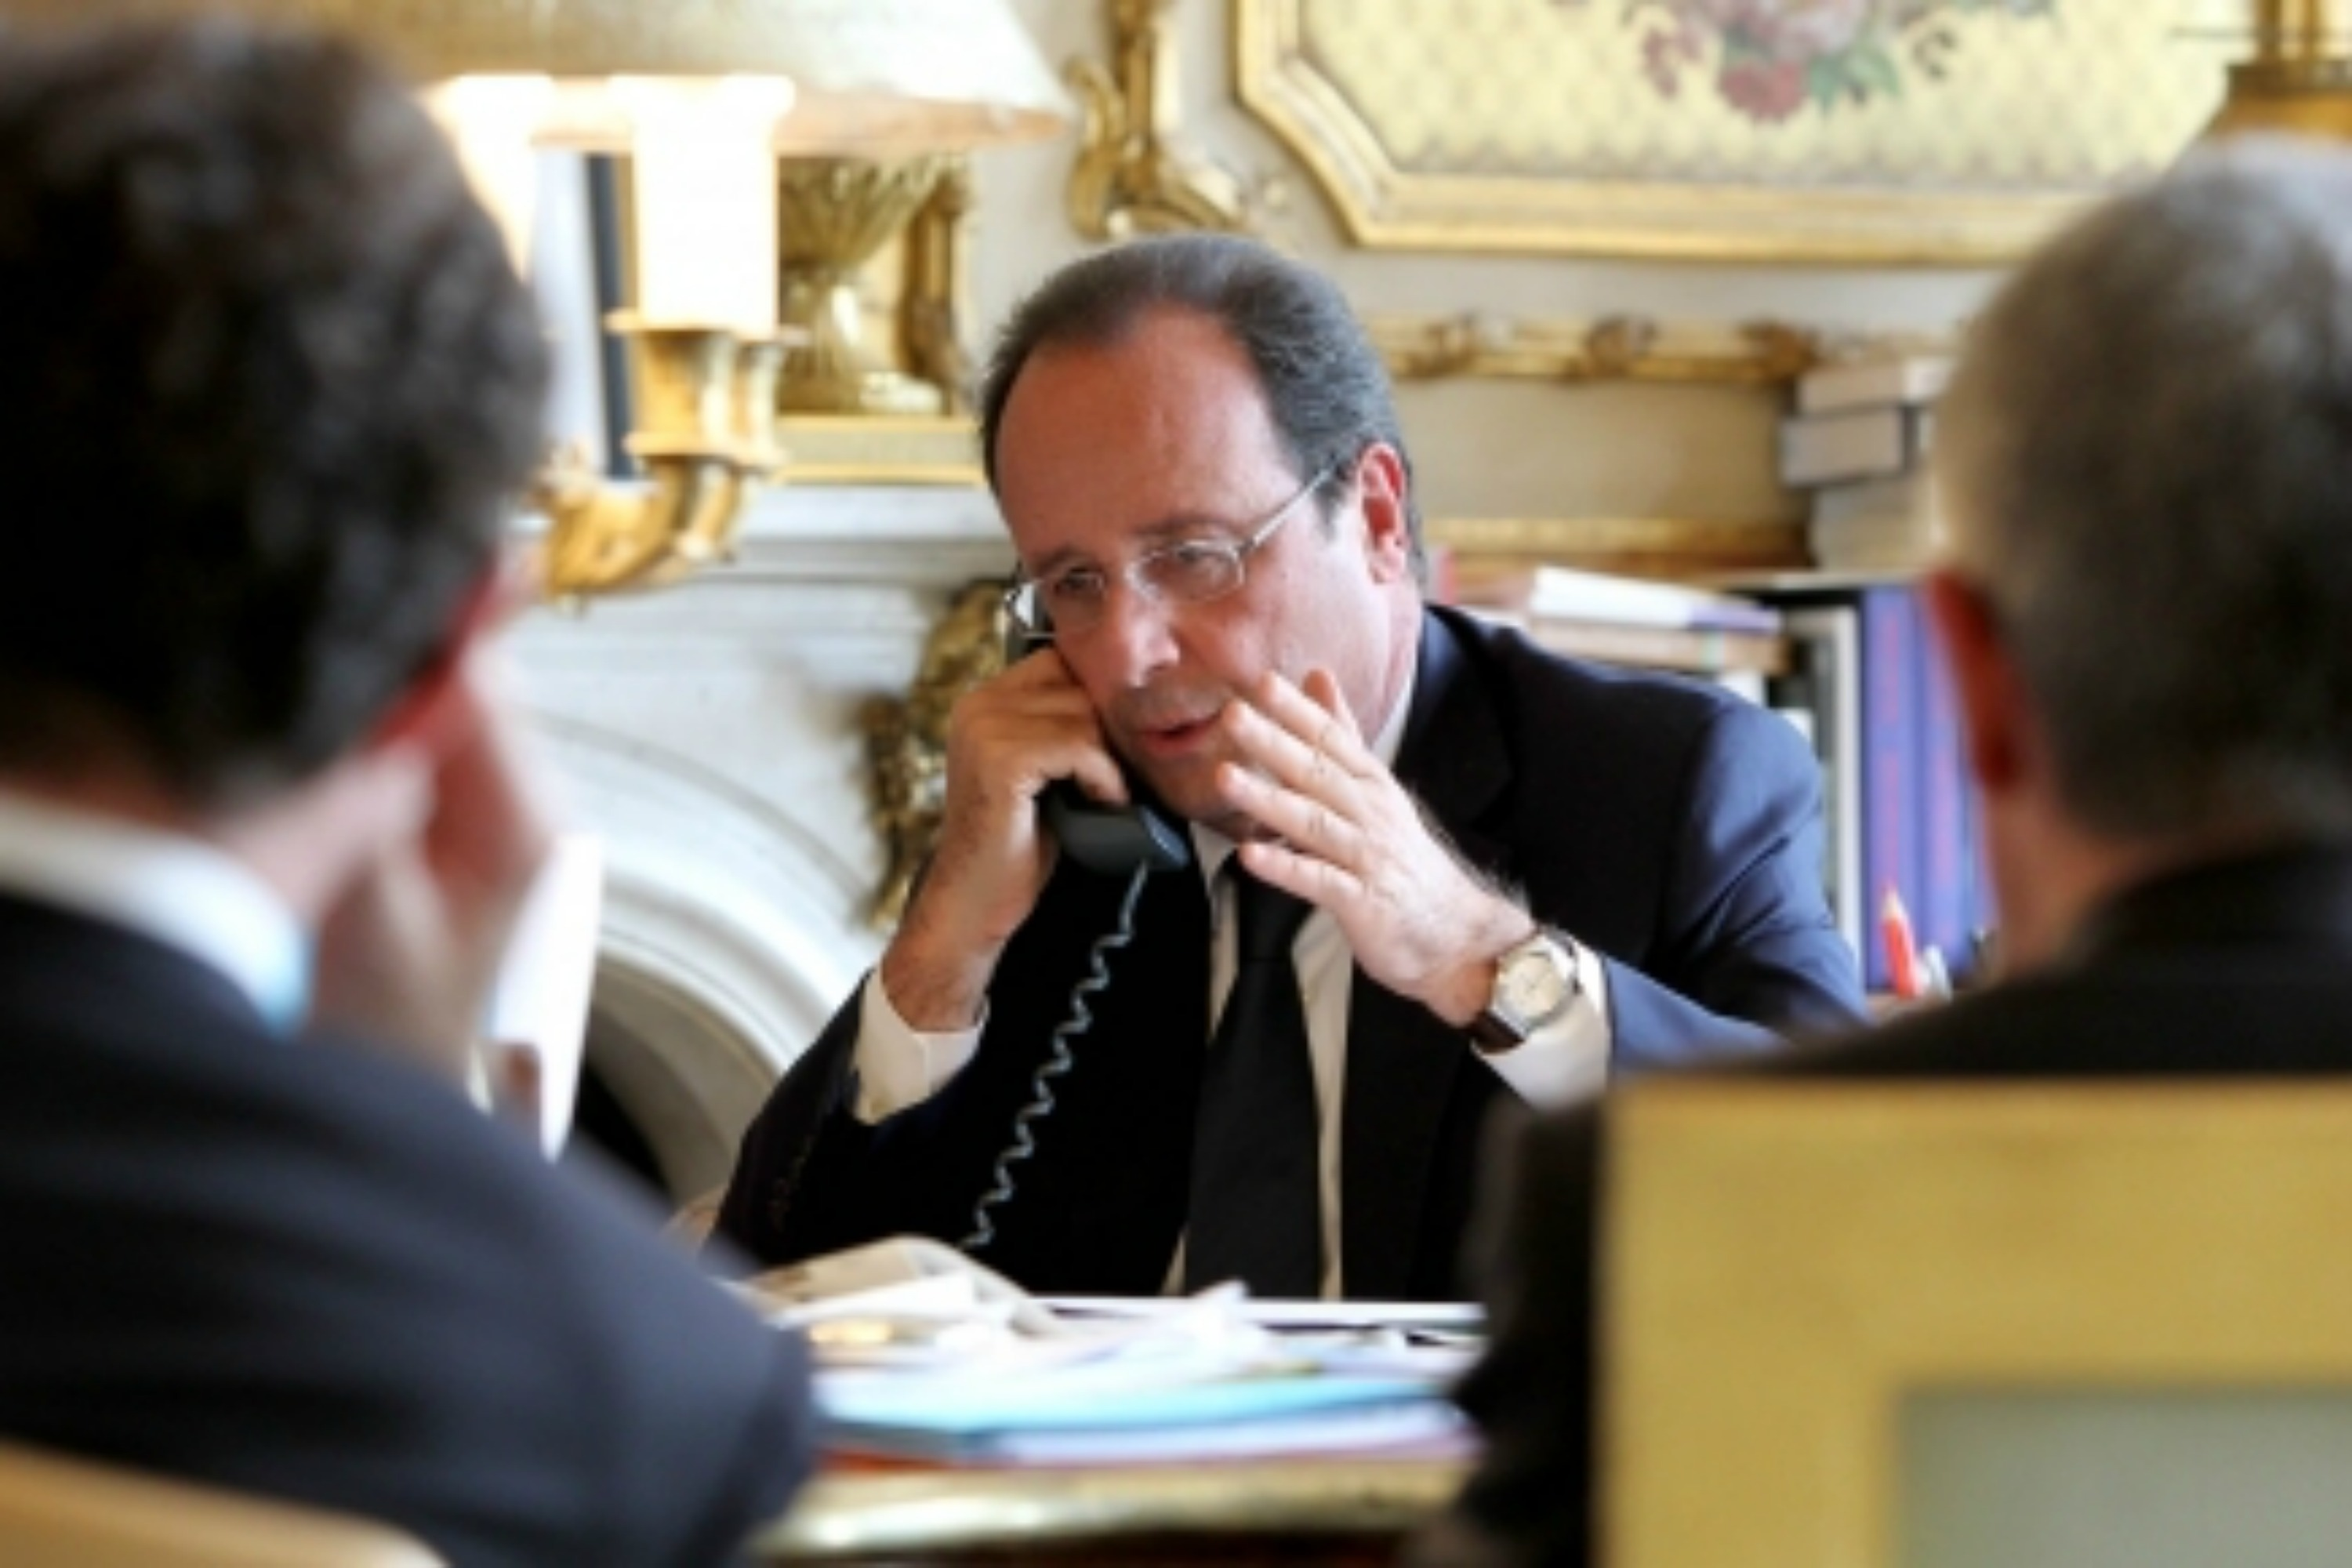 François Hollande on the phone with Vladimir Putin [French Presidency website]